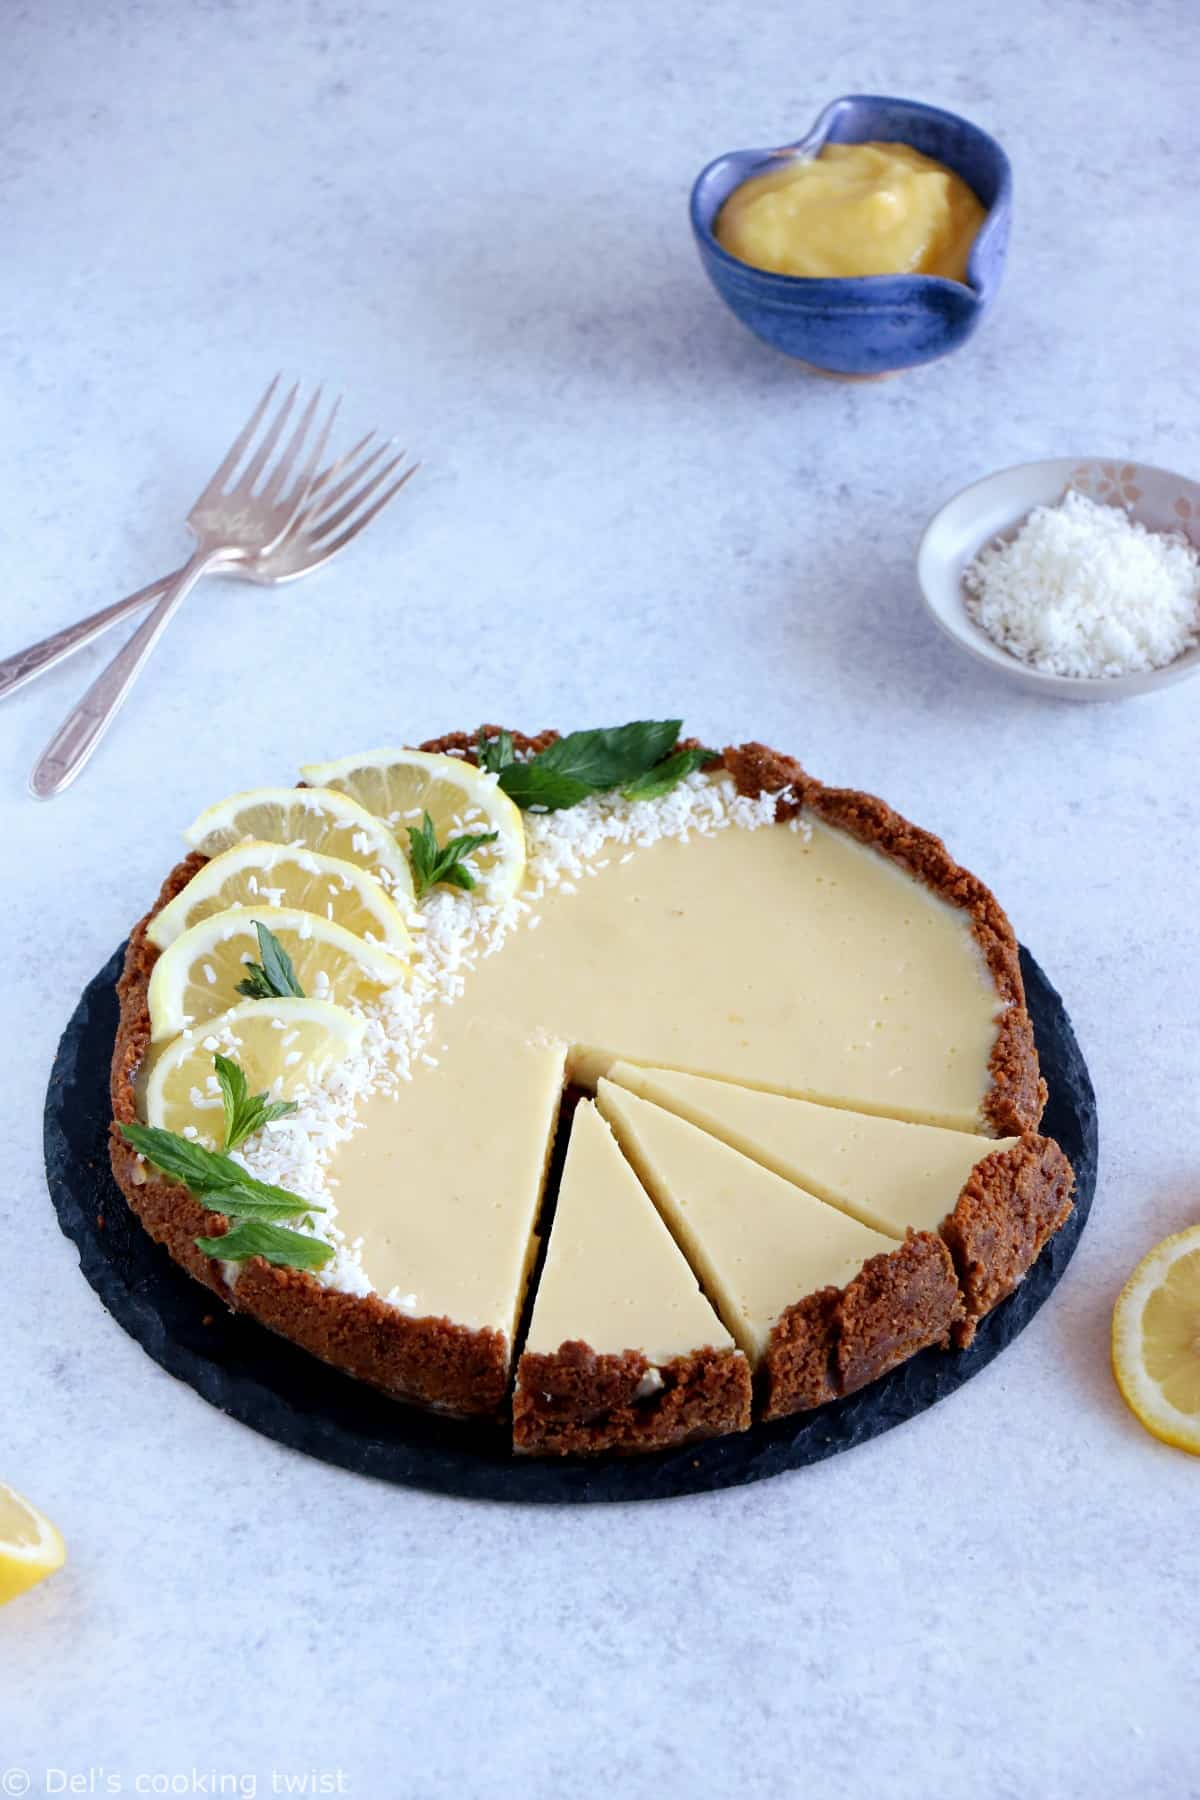 The Fabulous Speculoos Lemon Tart. 5 ingredients only for this super simple speculoos lemon tart. My favorite recipe for busy days. Expect creamy, refreshing flavors with a sweet crunchy base.